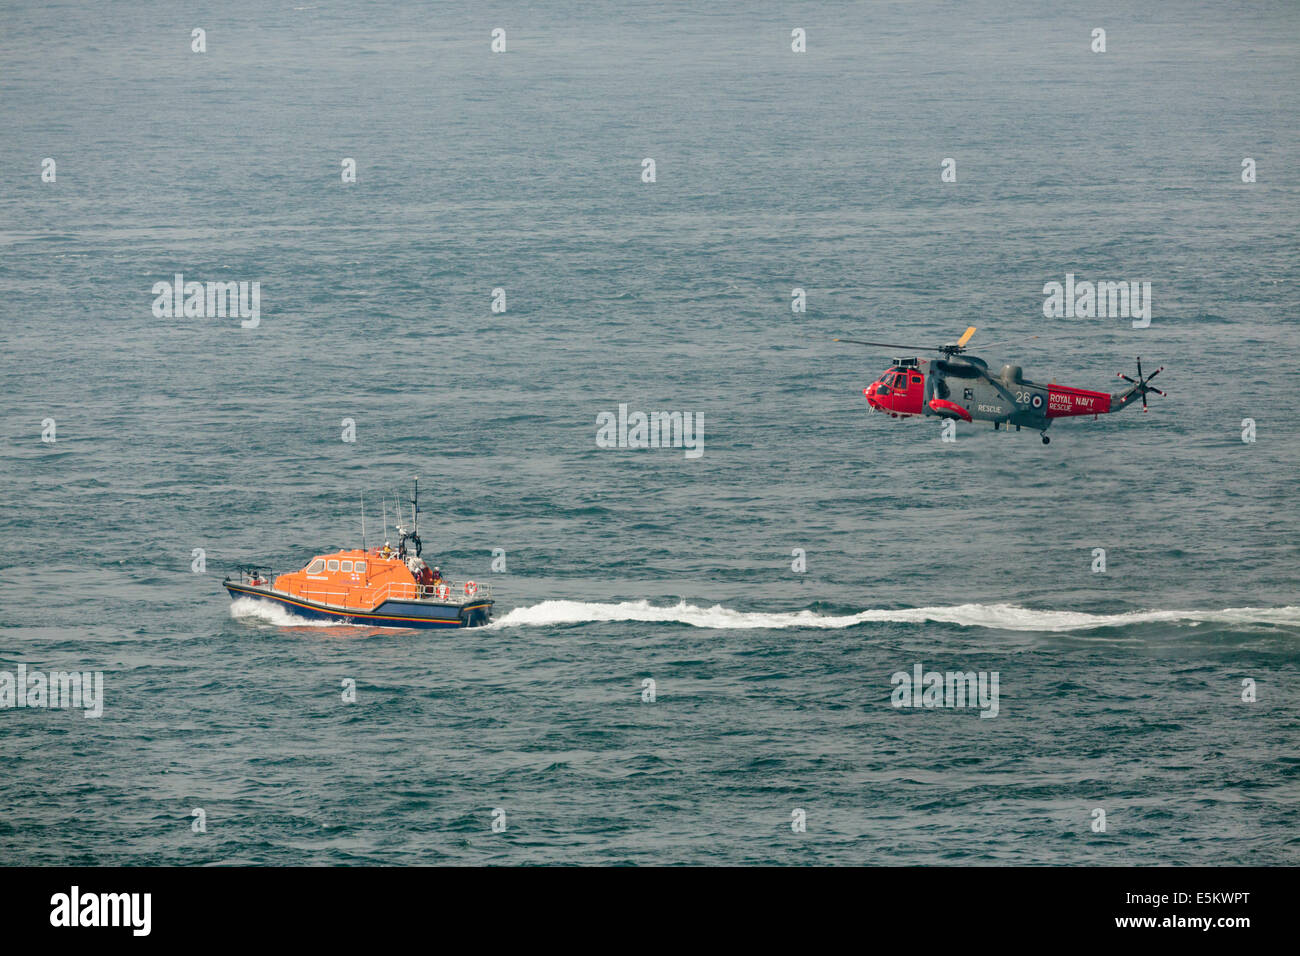 Air Sea Rescue; Lifeboat; Helicopter; Land's End; Cornwall; UK - Stock Image